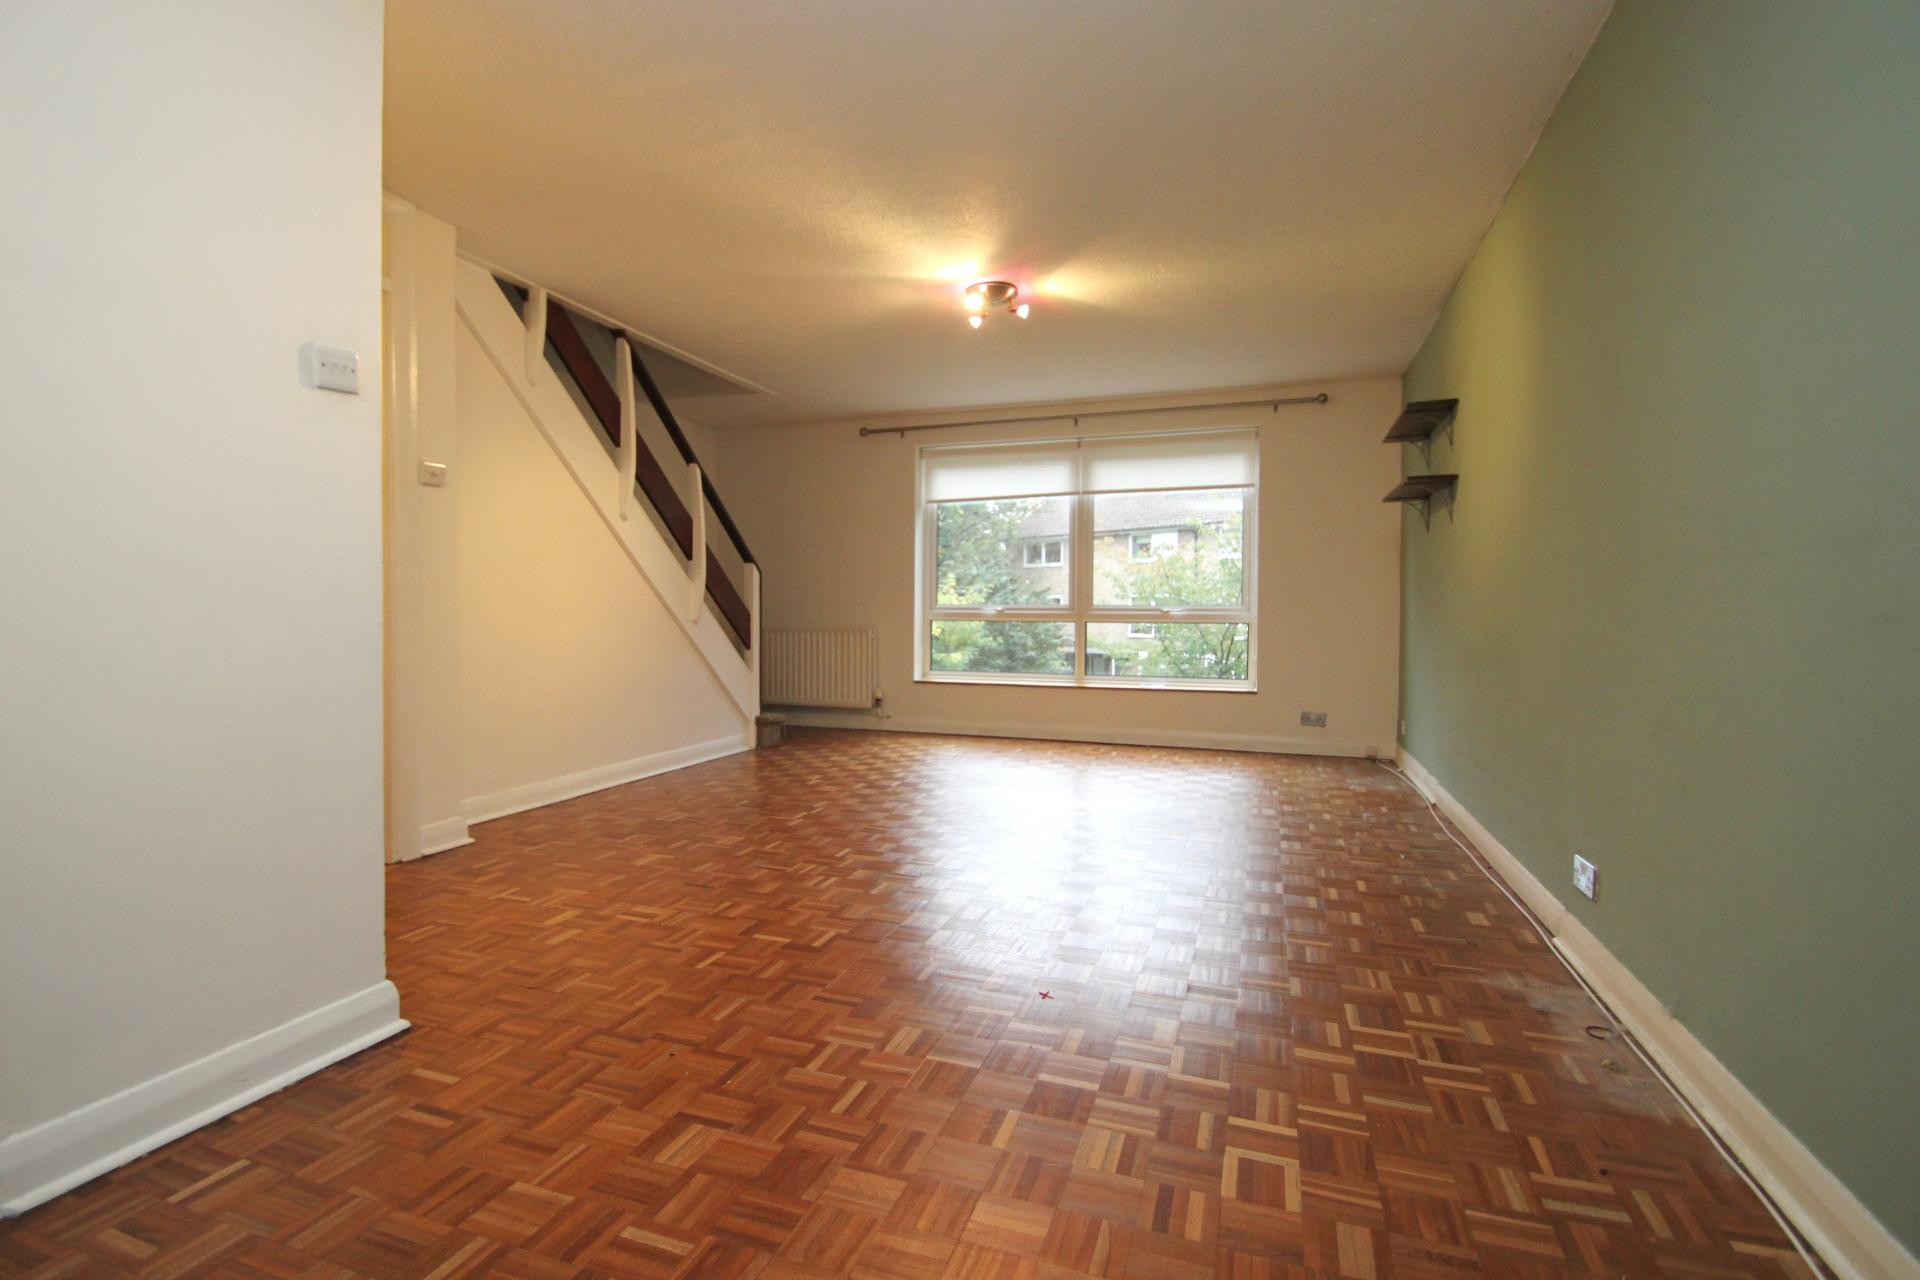 2 Bedroom Apartment For Rent In Surbiton